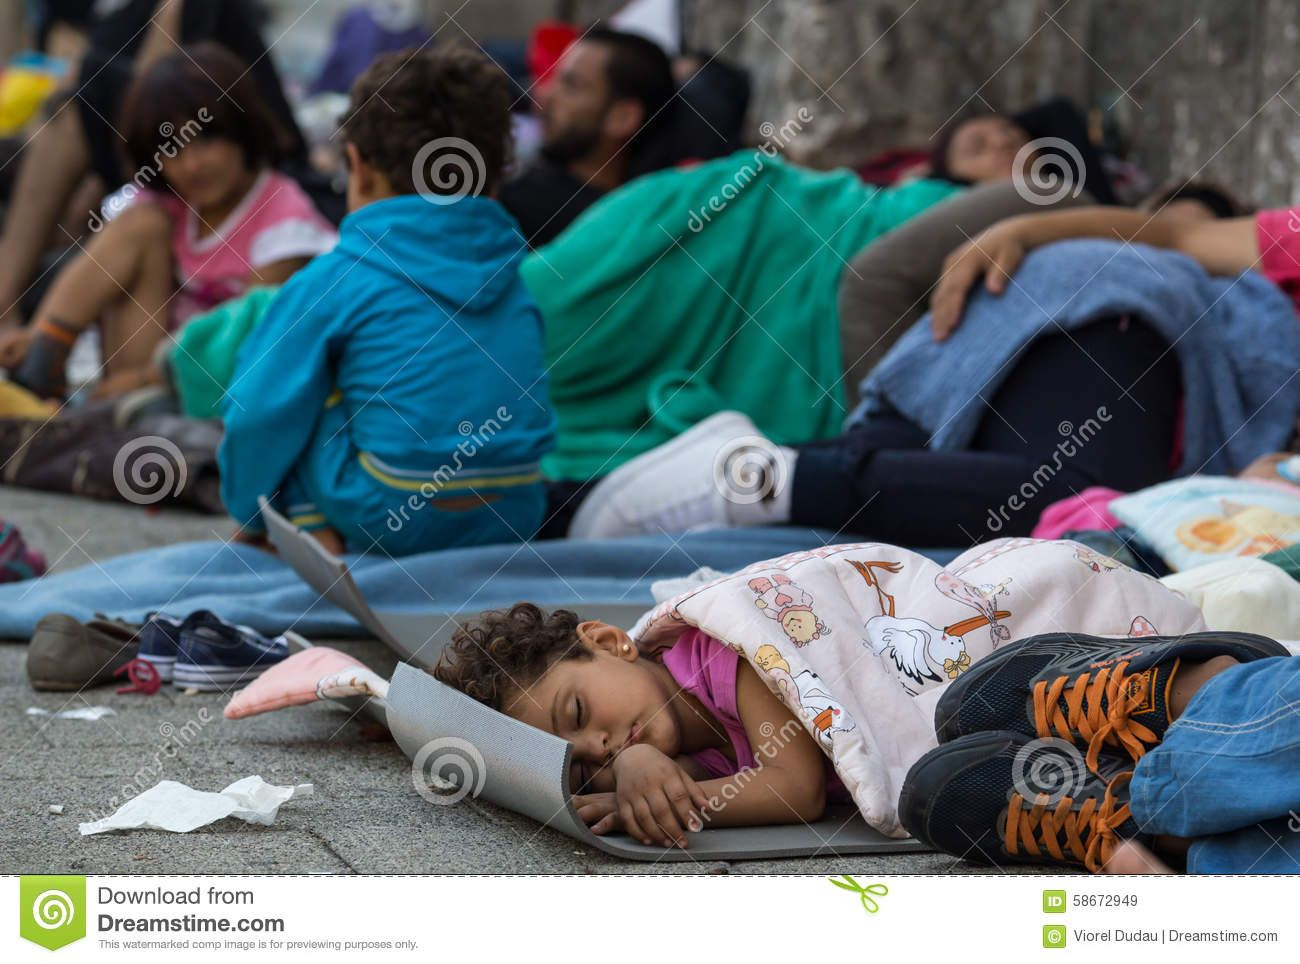 Refugee Child Sleeping At Keleti Train Station In Hungary - Download From Over 45 Million High Quality Stock Photos, Images, Vectors. Sign up for FREE today. Image: 58672949